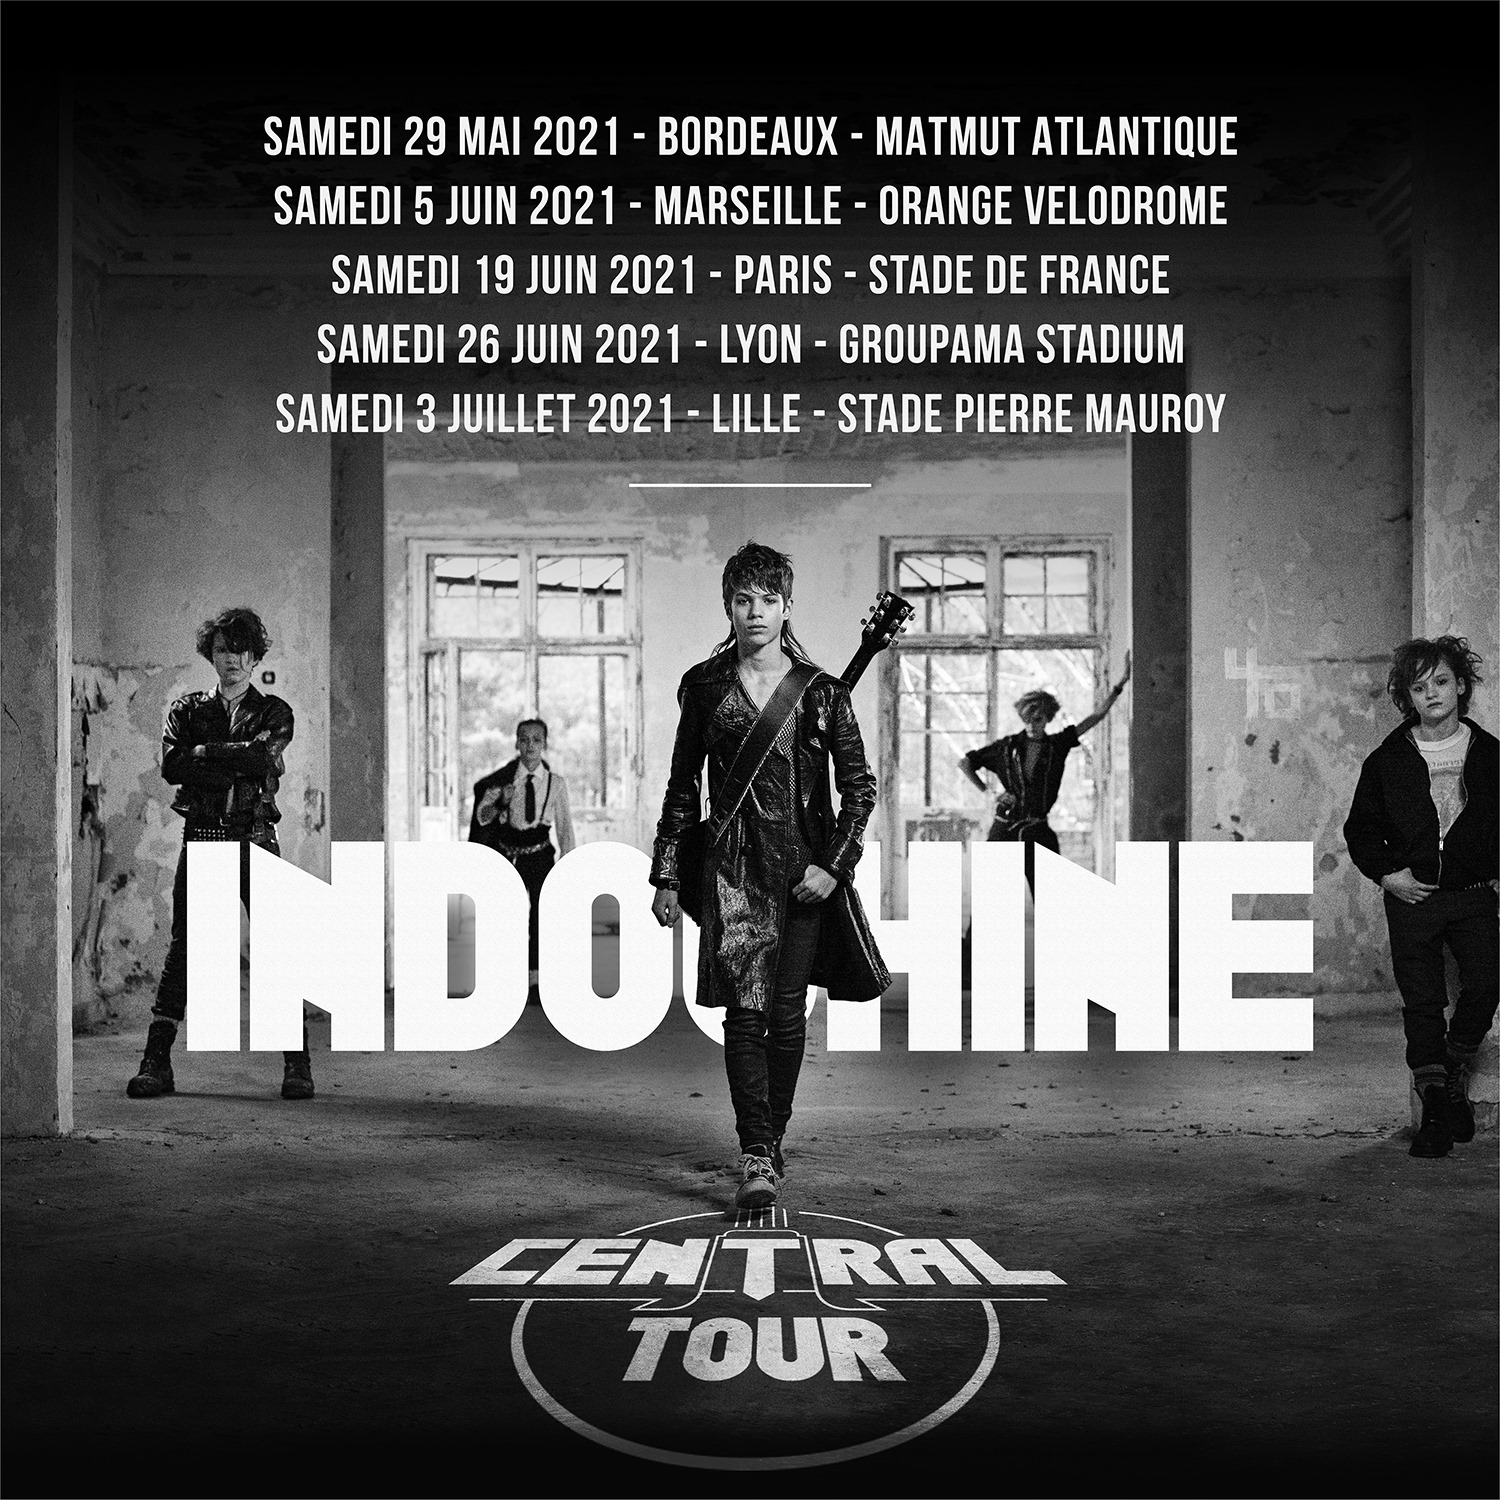 Indochine - 40 ans - Central Tour